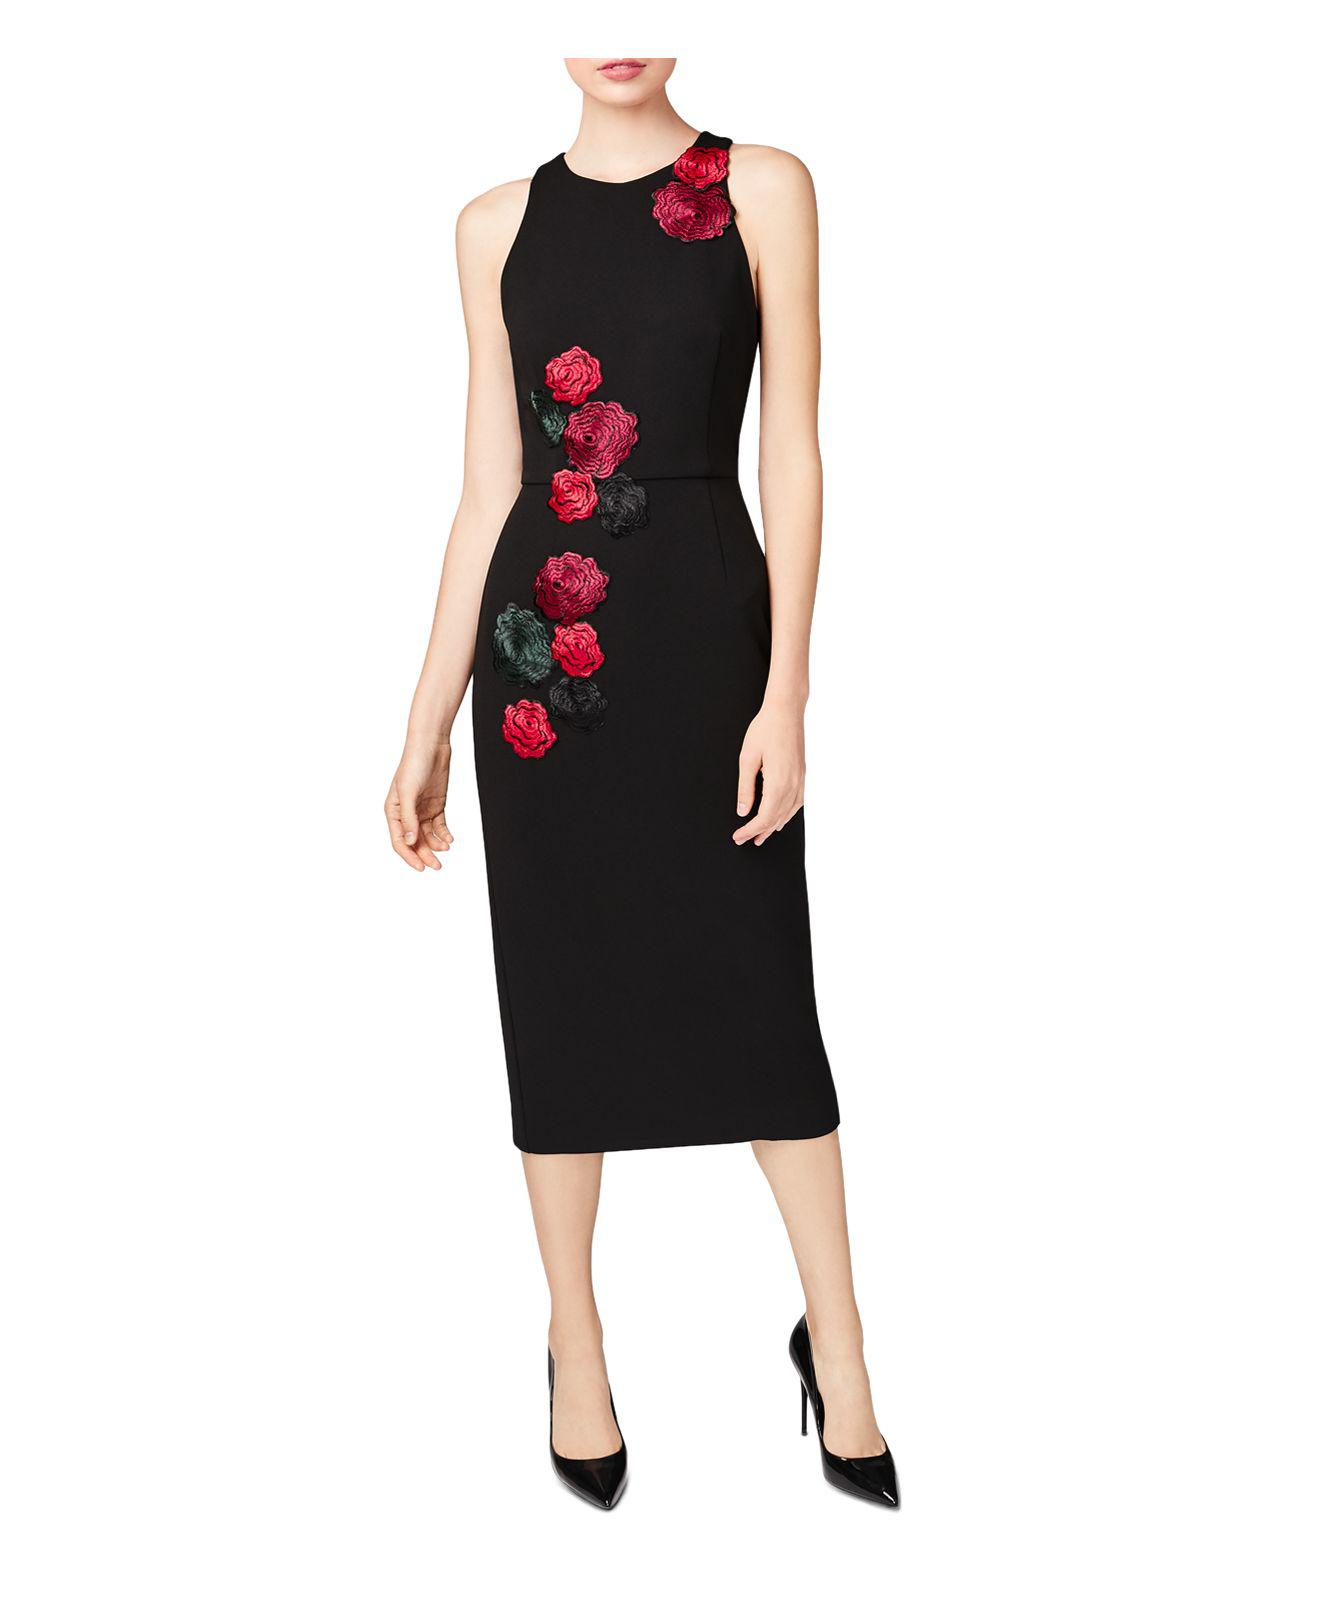 31bbec6c2a4 Betsey Johnson Embroidered Floral-appliqué Midi Dress in Black - Lyst